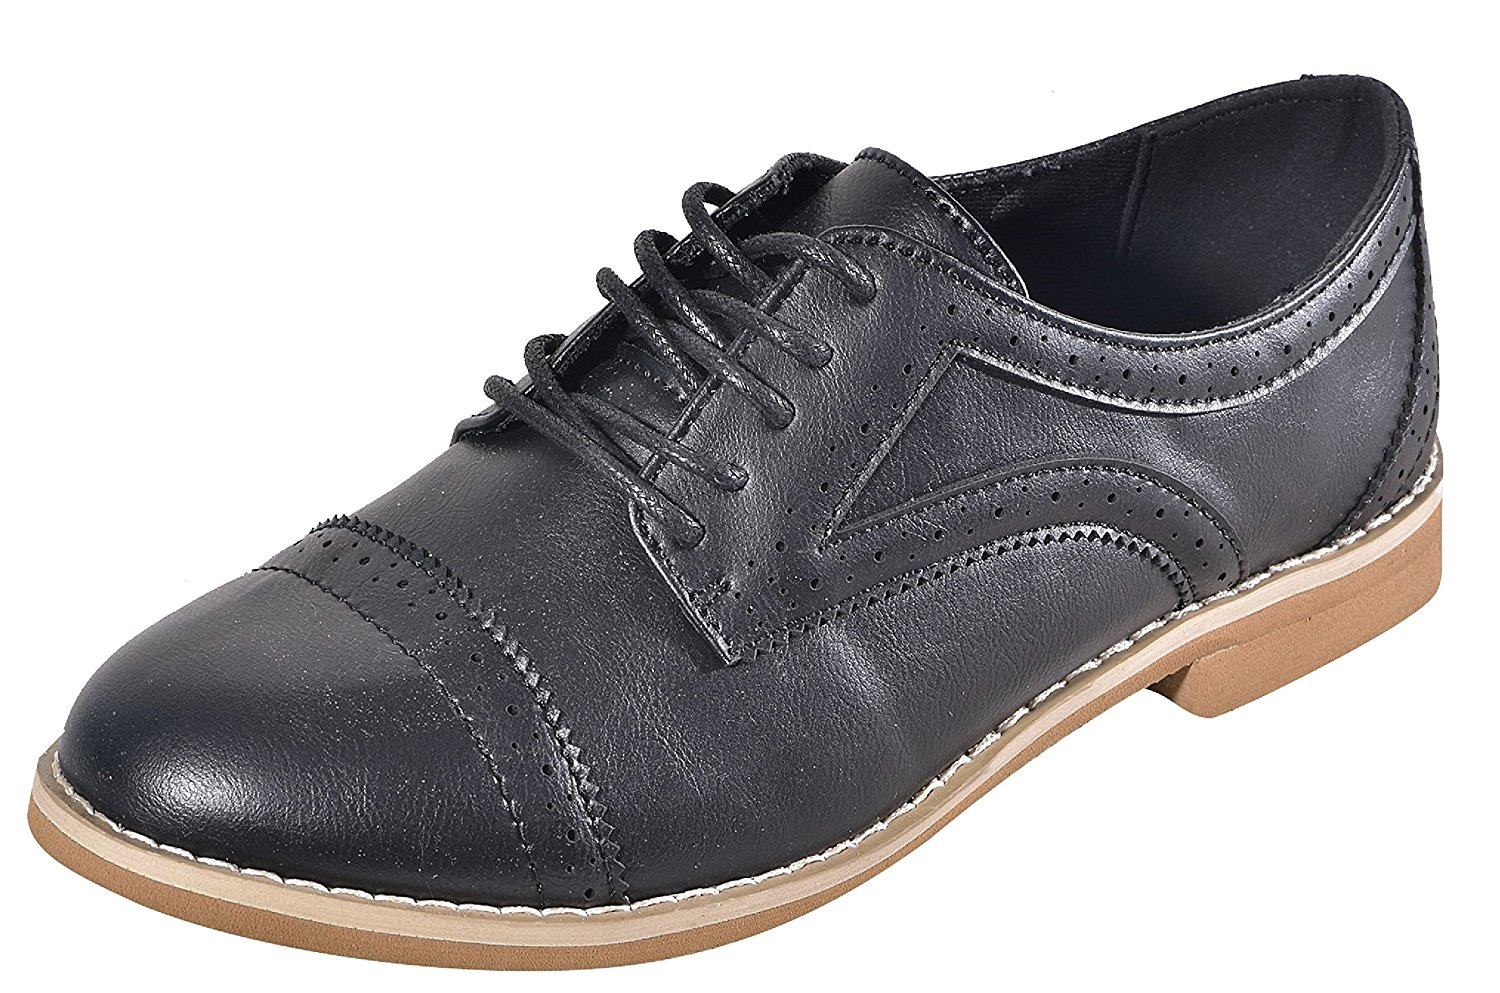 eef361b4 Get Quotations · Alyn Black Cute Faux Leather Oxford Style Laced up Closed  Toe Small Heel Flex Comfy Flats